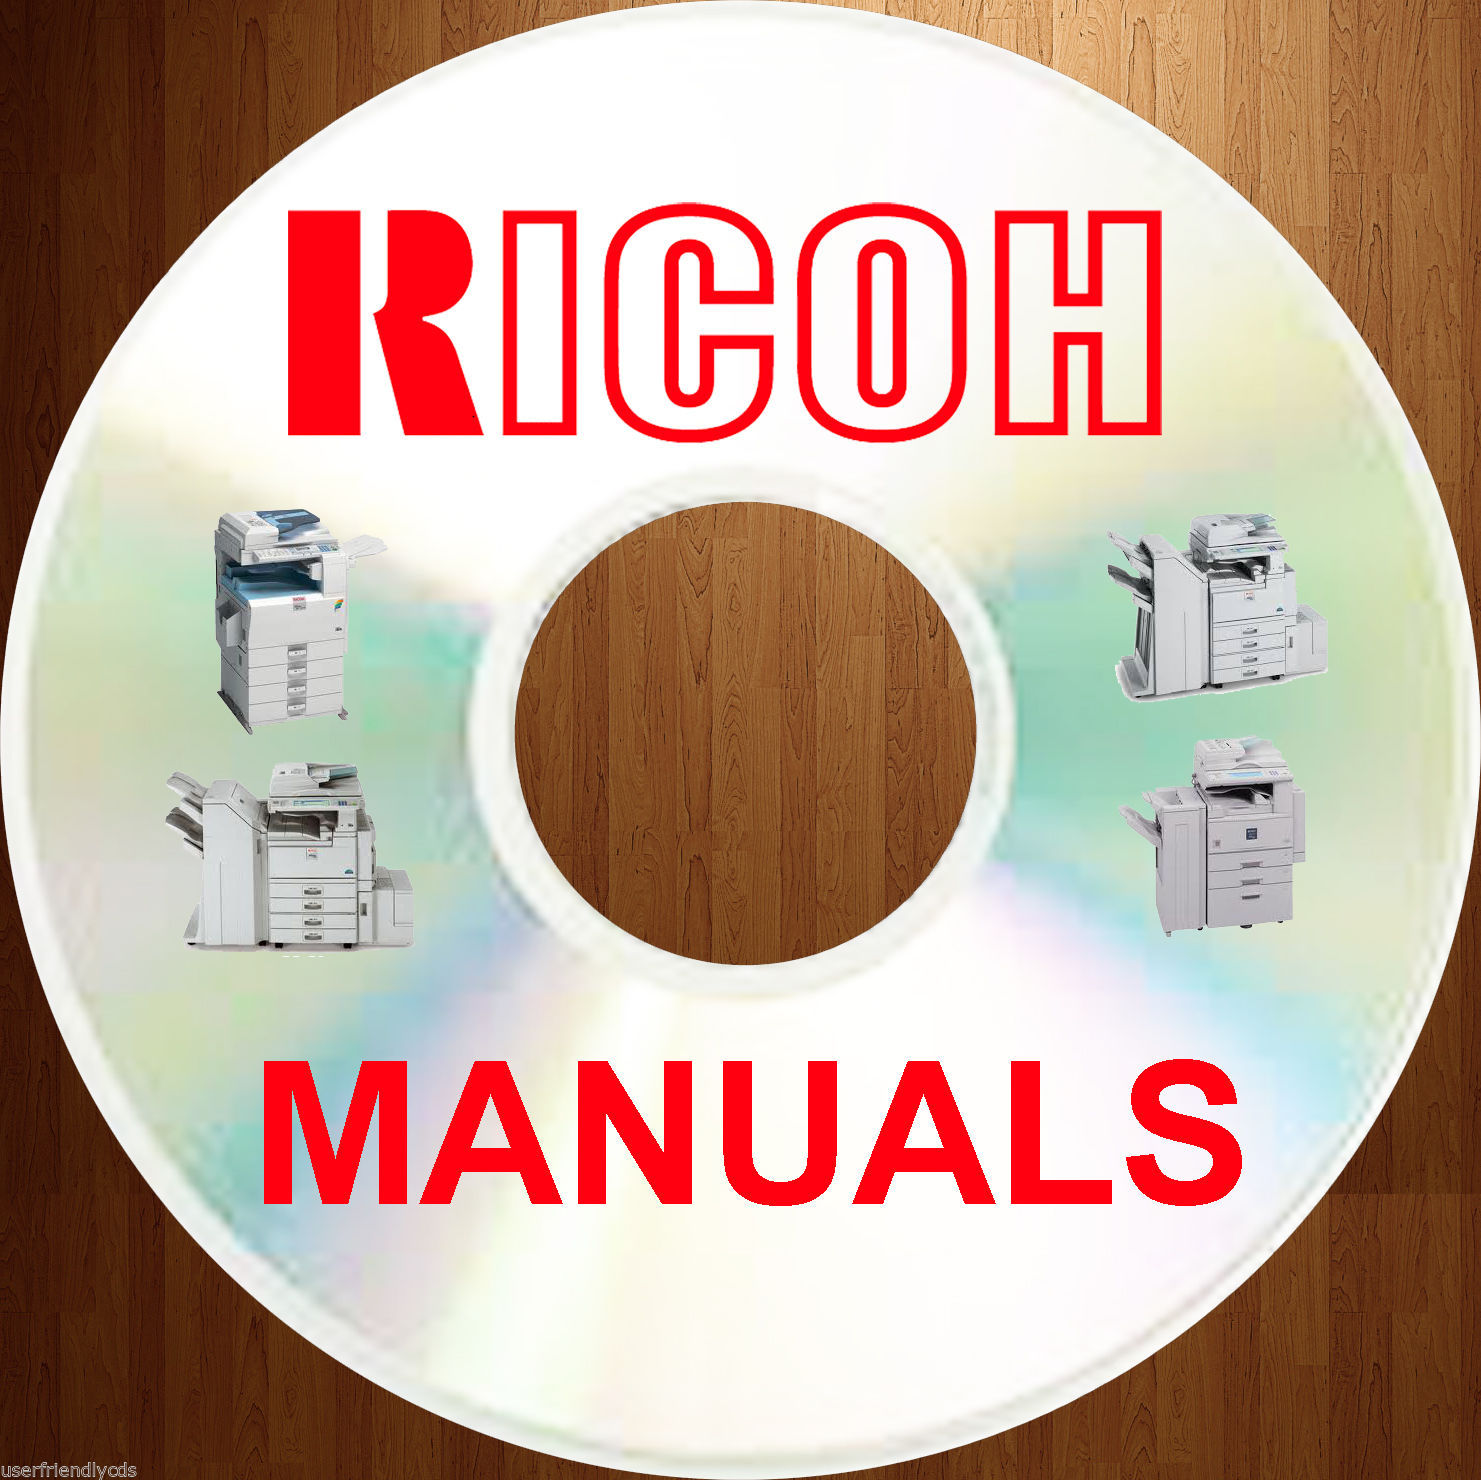 Ricoh B W Analog Copier Service Manuals And 50 Similar Items